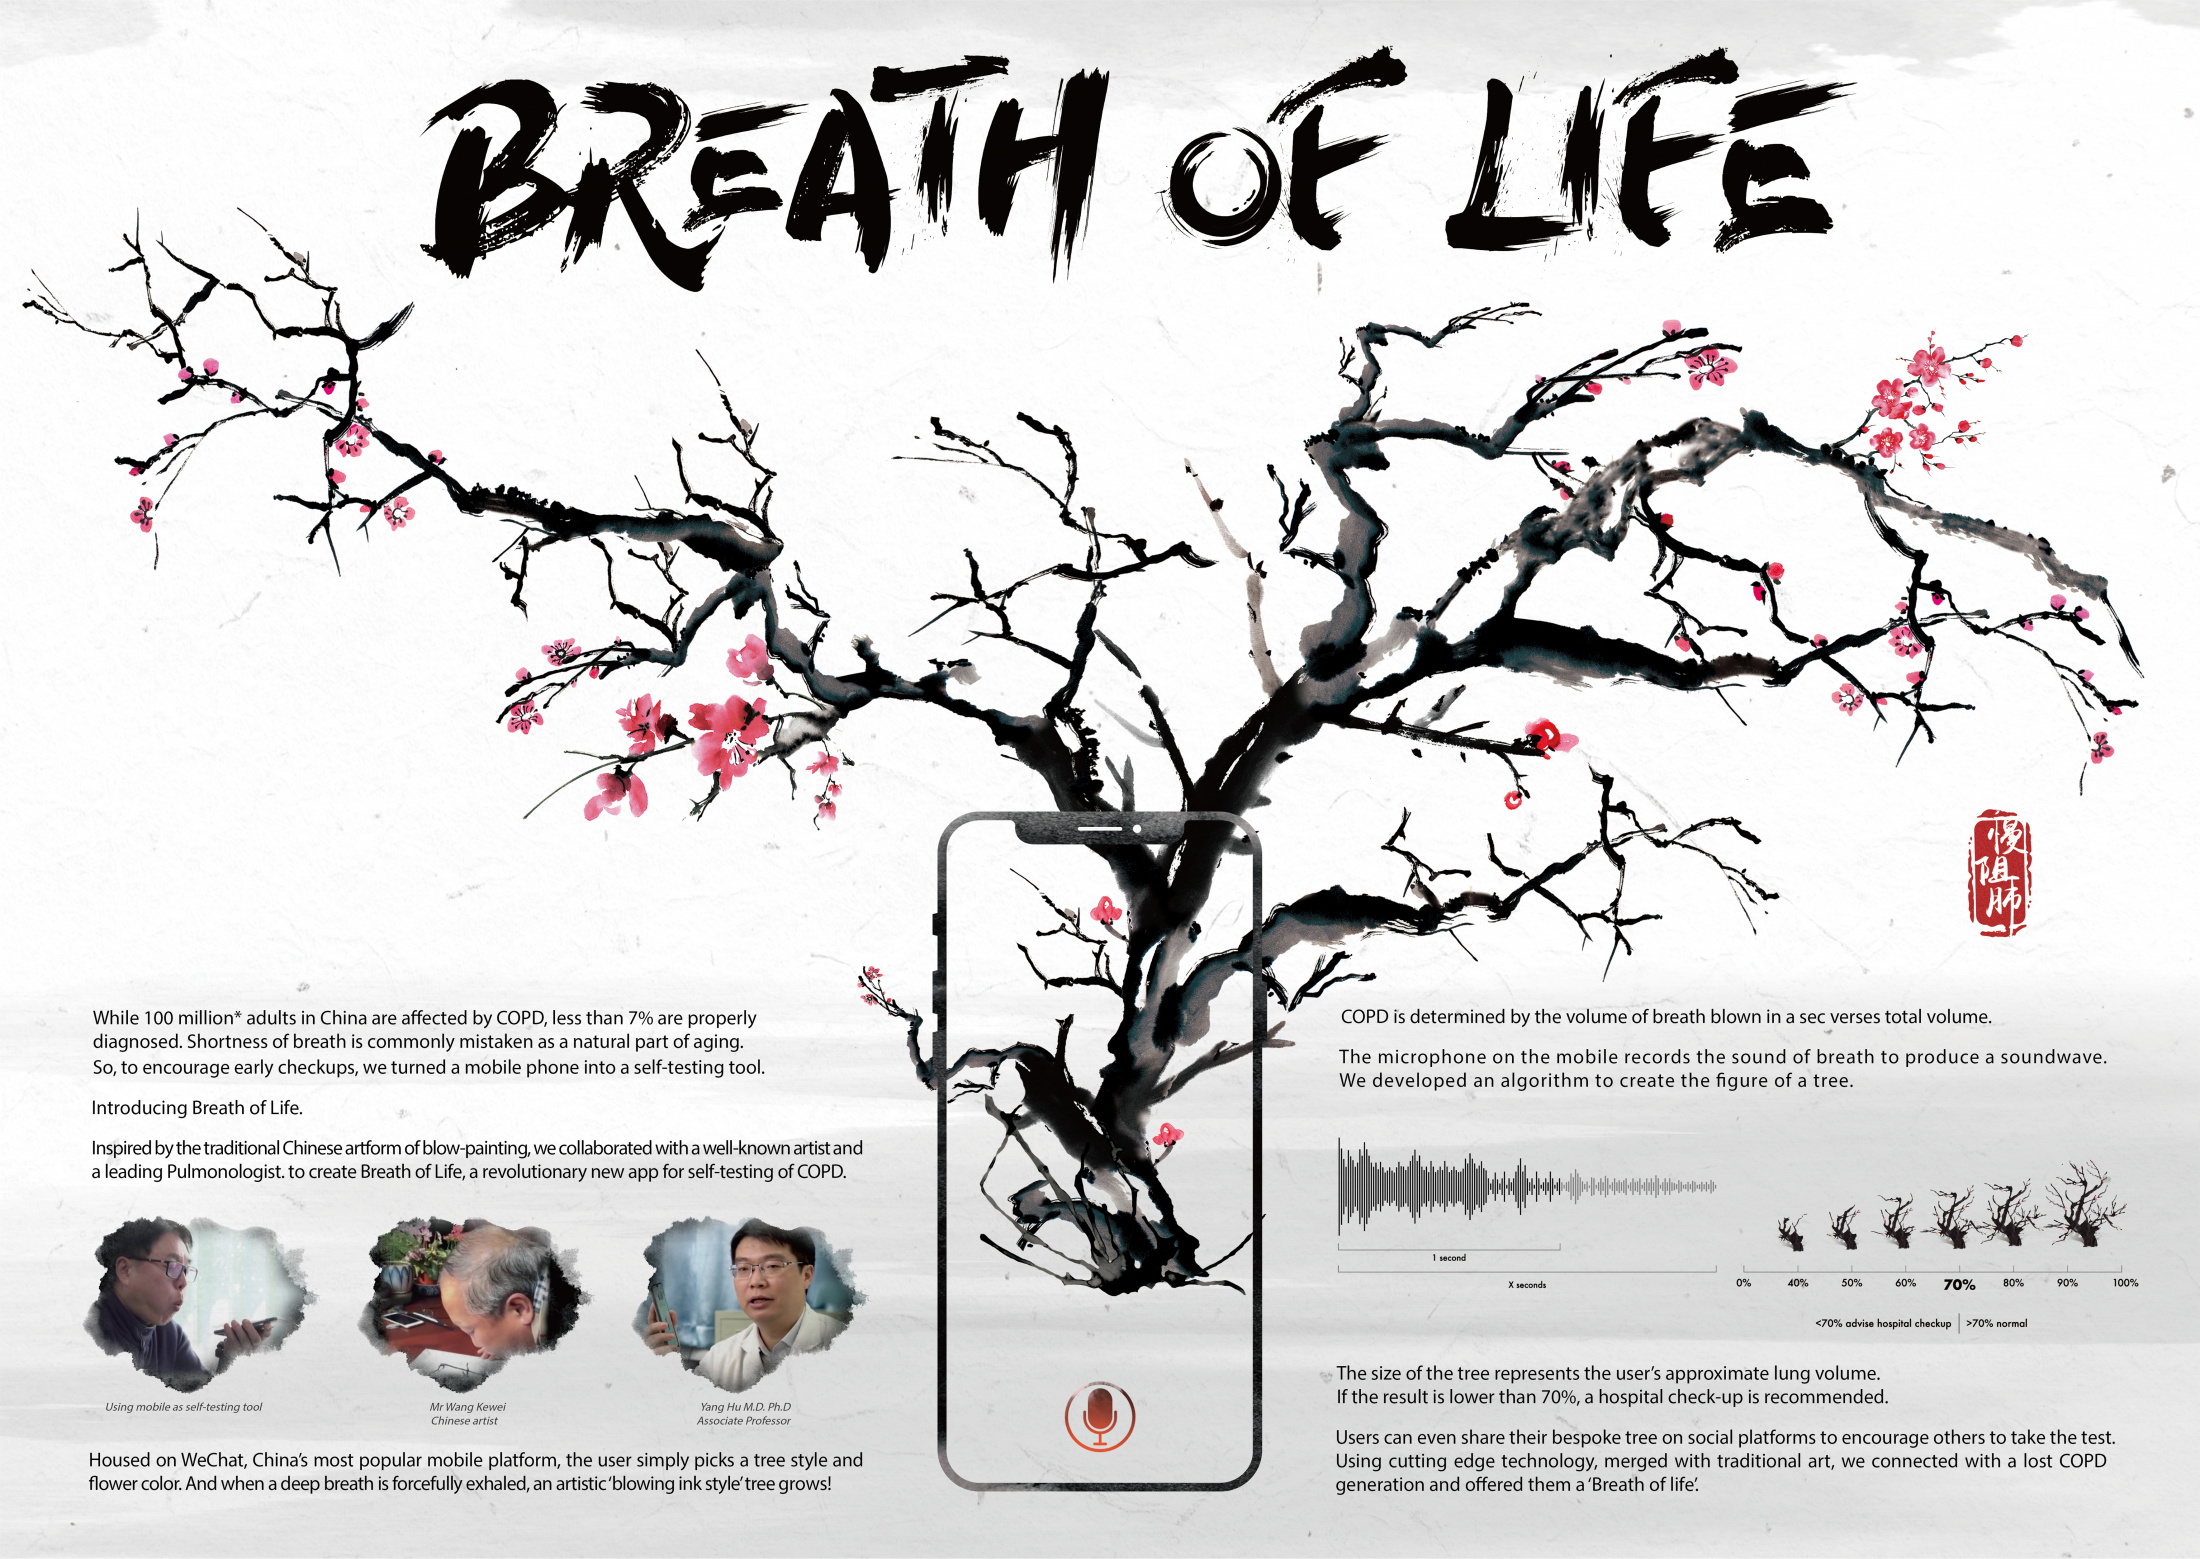 Thumbnail for Breath of life